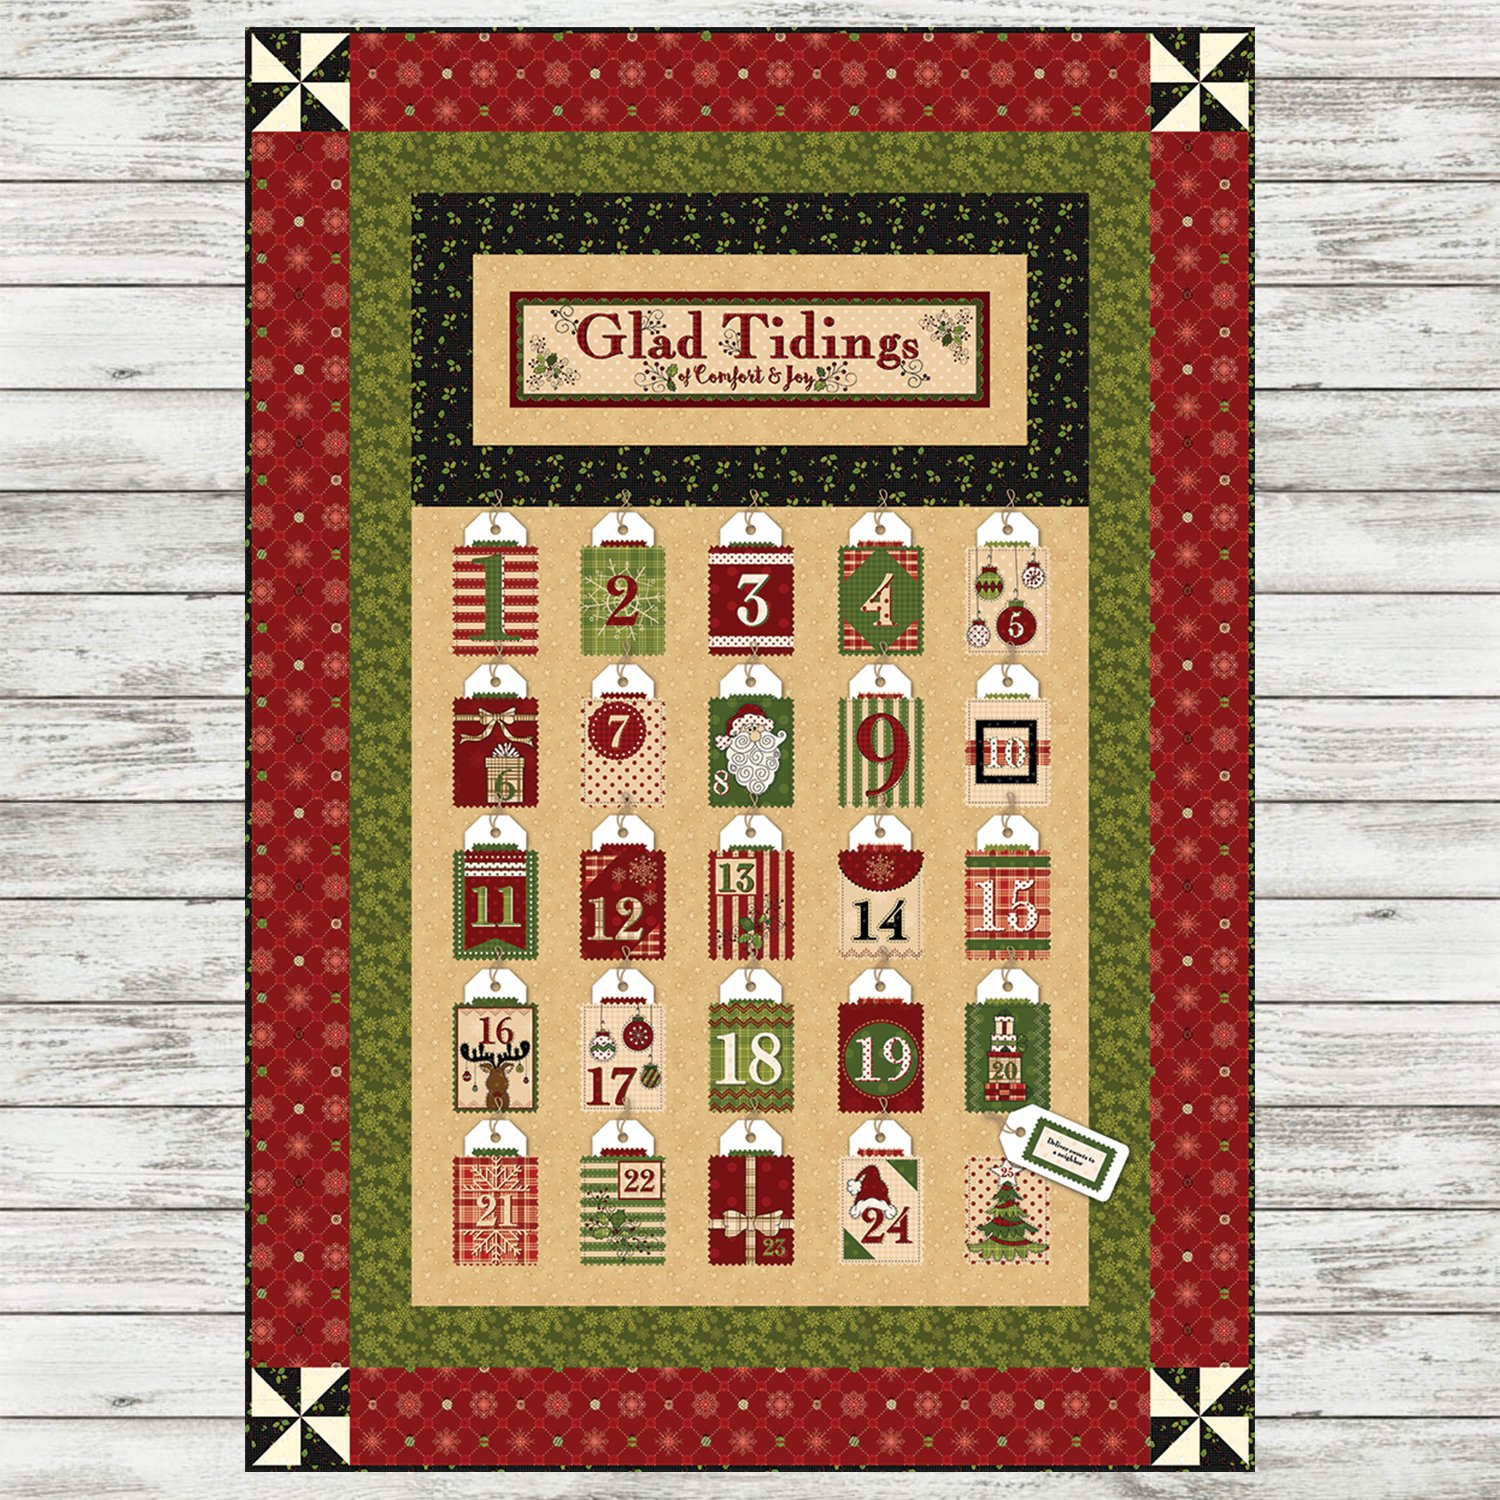 Glad Tidings Kindness Calendar Kit